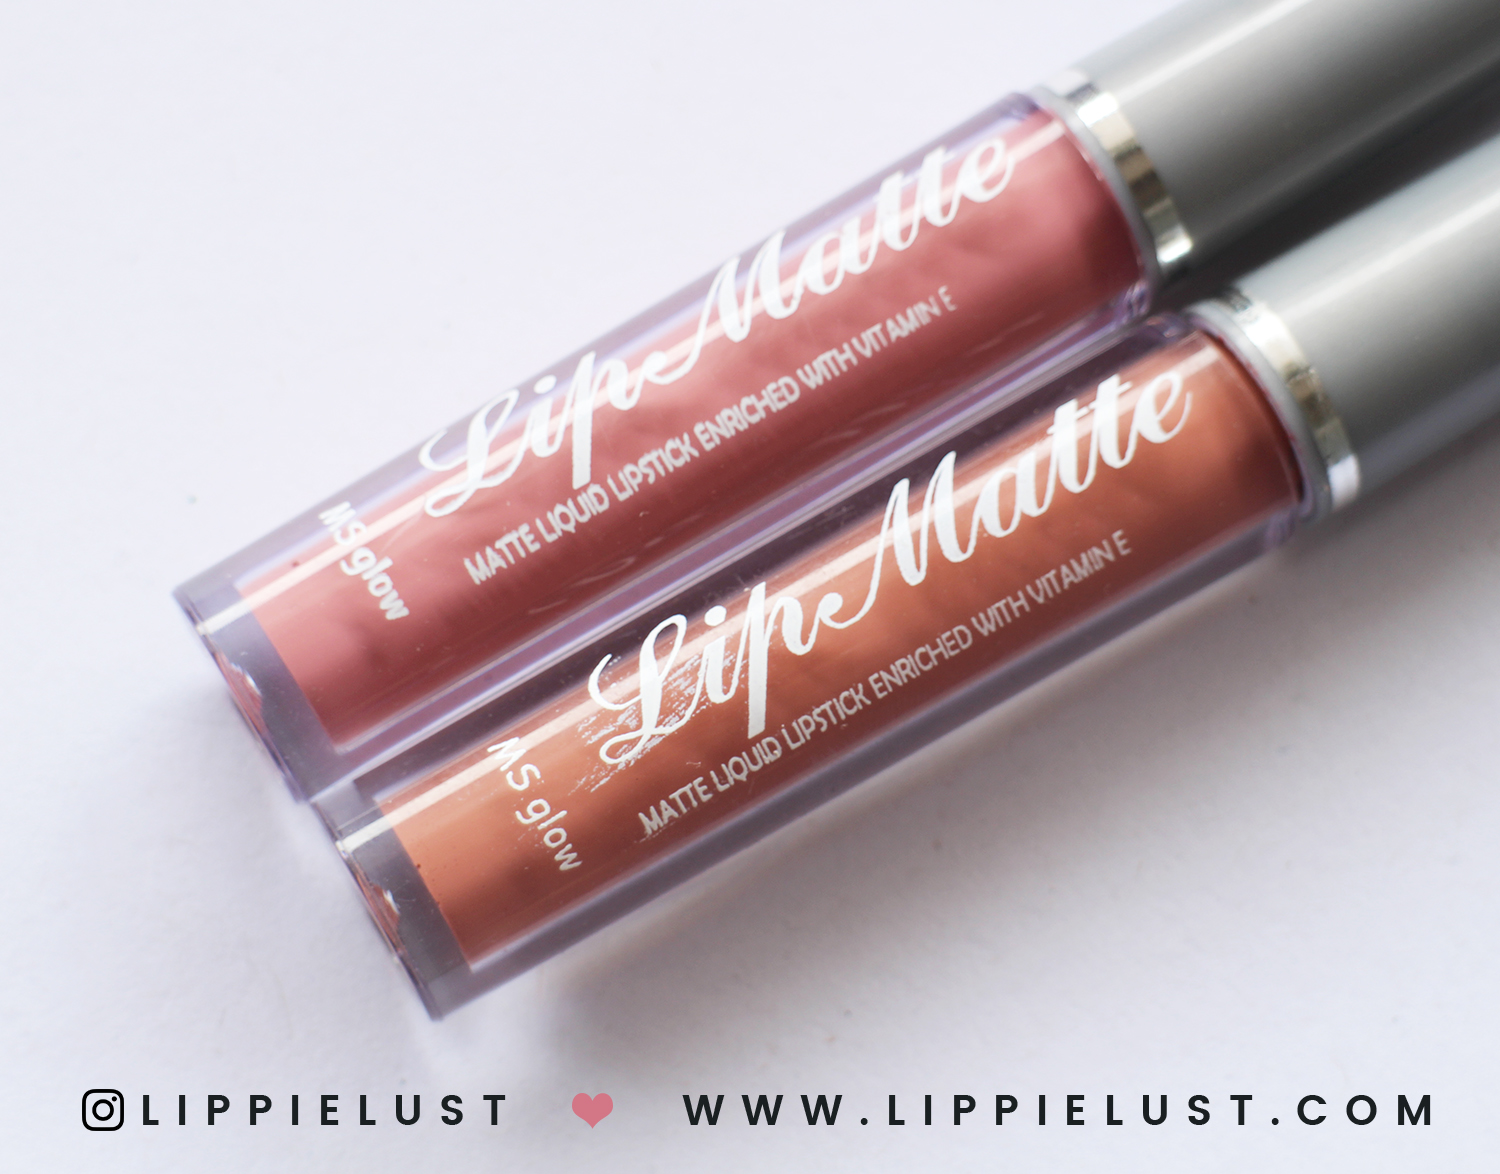 MS GLOW LIPPIELUST 4